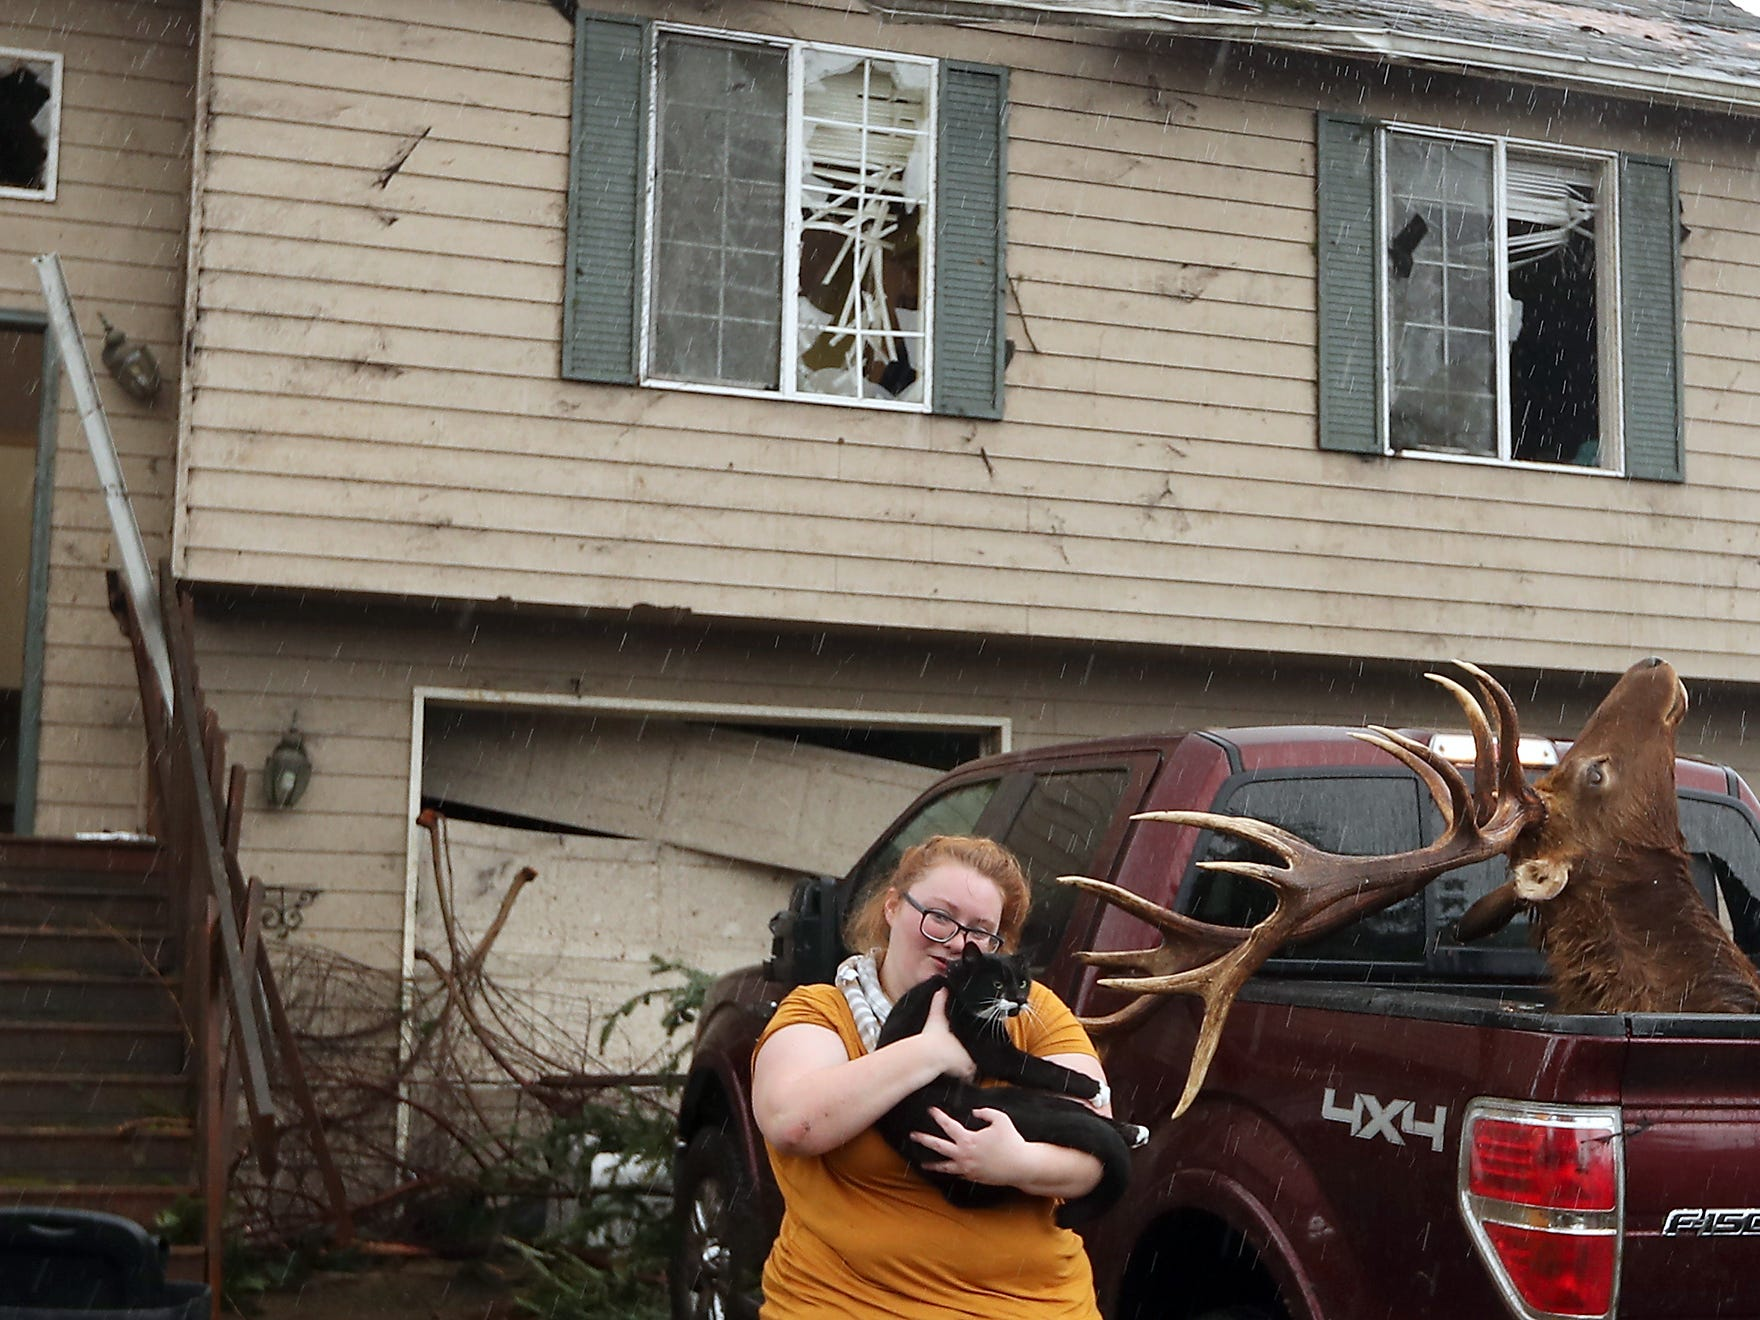 Morgan Crain hurries through the rain as she snuggles her cat Loki after finding him scared and hiding under one of the beds of her family's heavily damaged home in Port Orchard, Washington  on Wednesday, December 19, 2018. The Crain's found two of their three cats missing after and EF2 tornado hit on Tuesday. (AP Photo / Meegan M. Reid, Kitsap Sun)